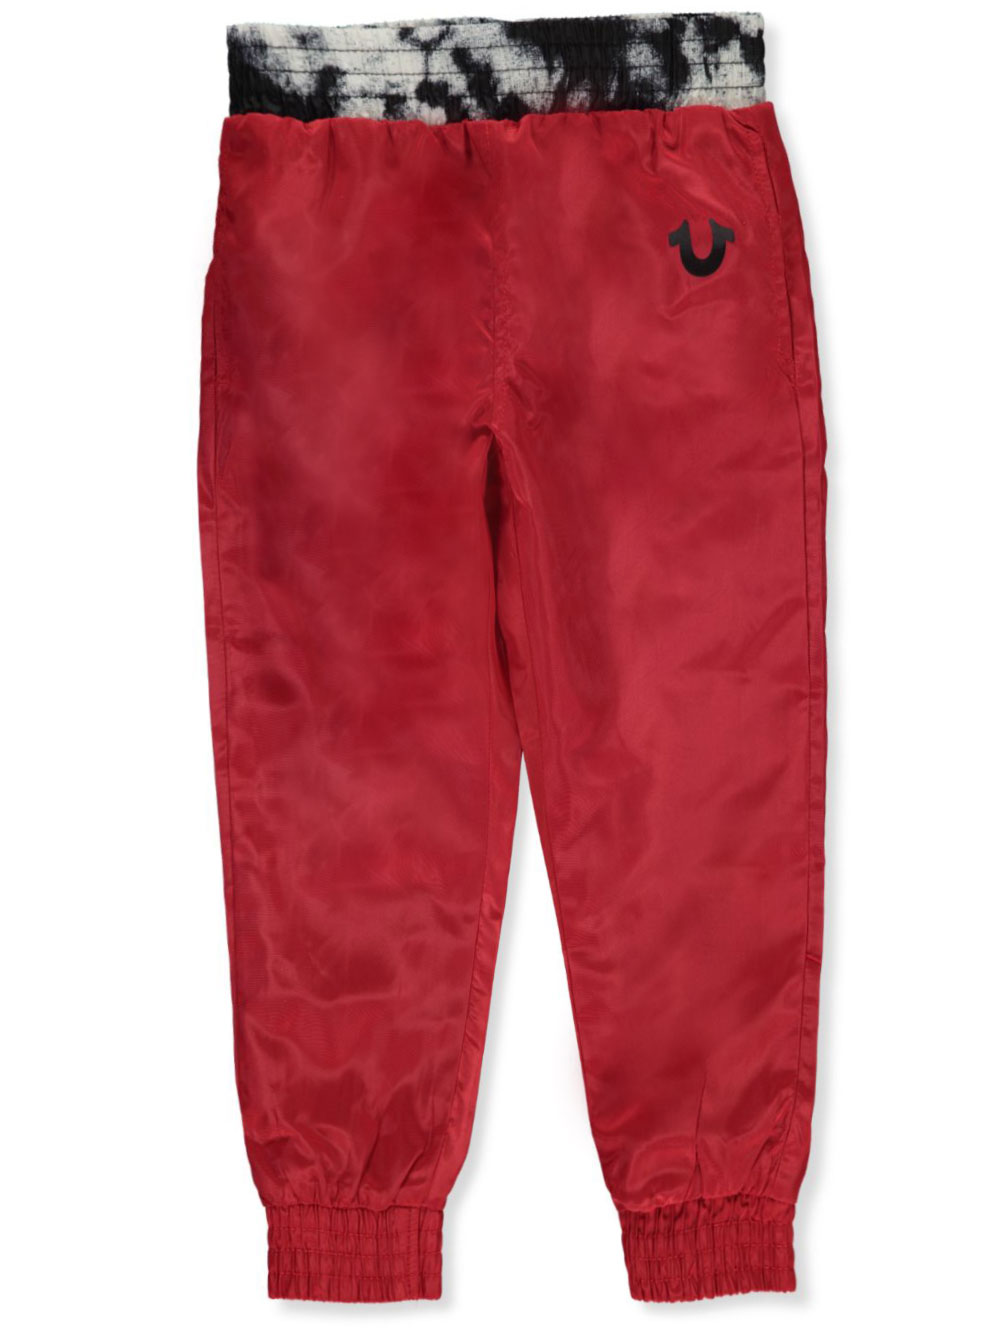 Ruby Sweatpants and Joggers